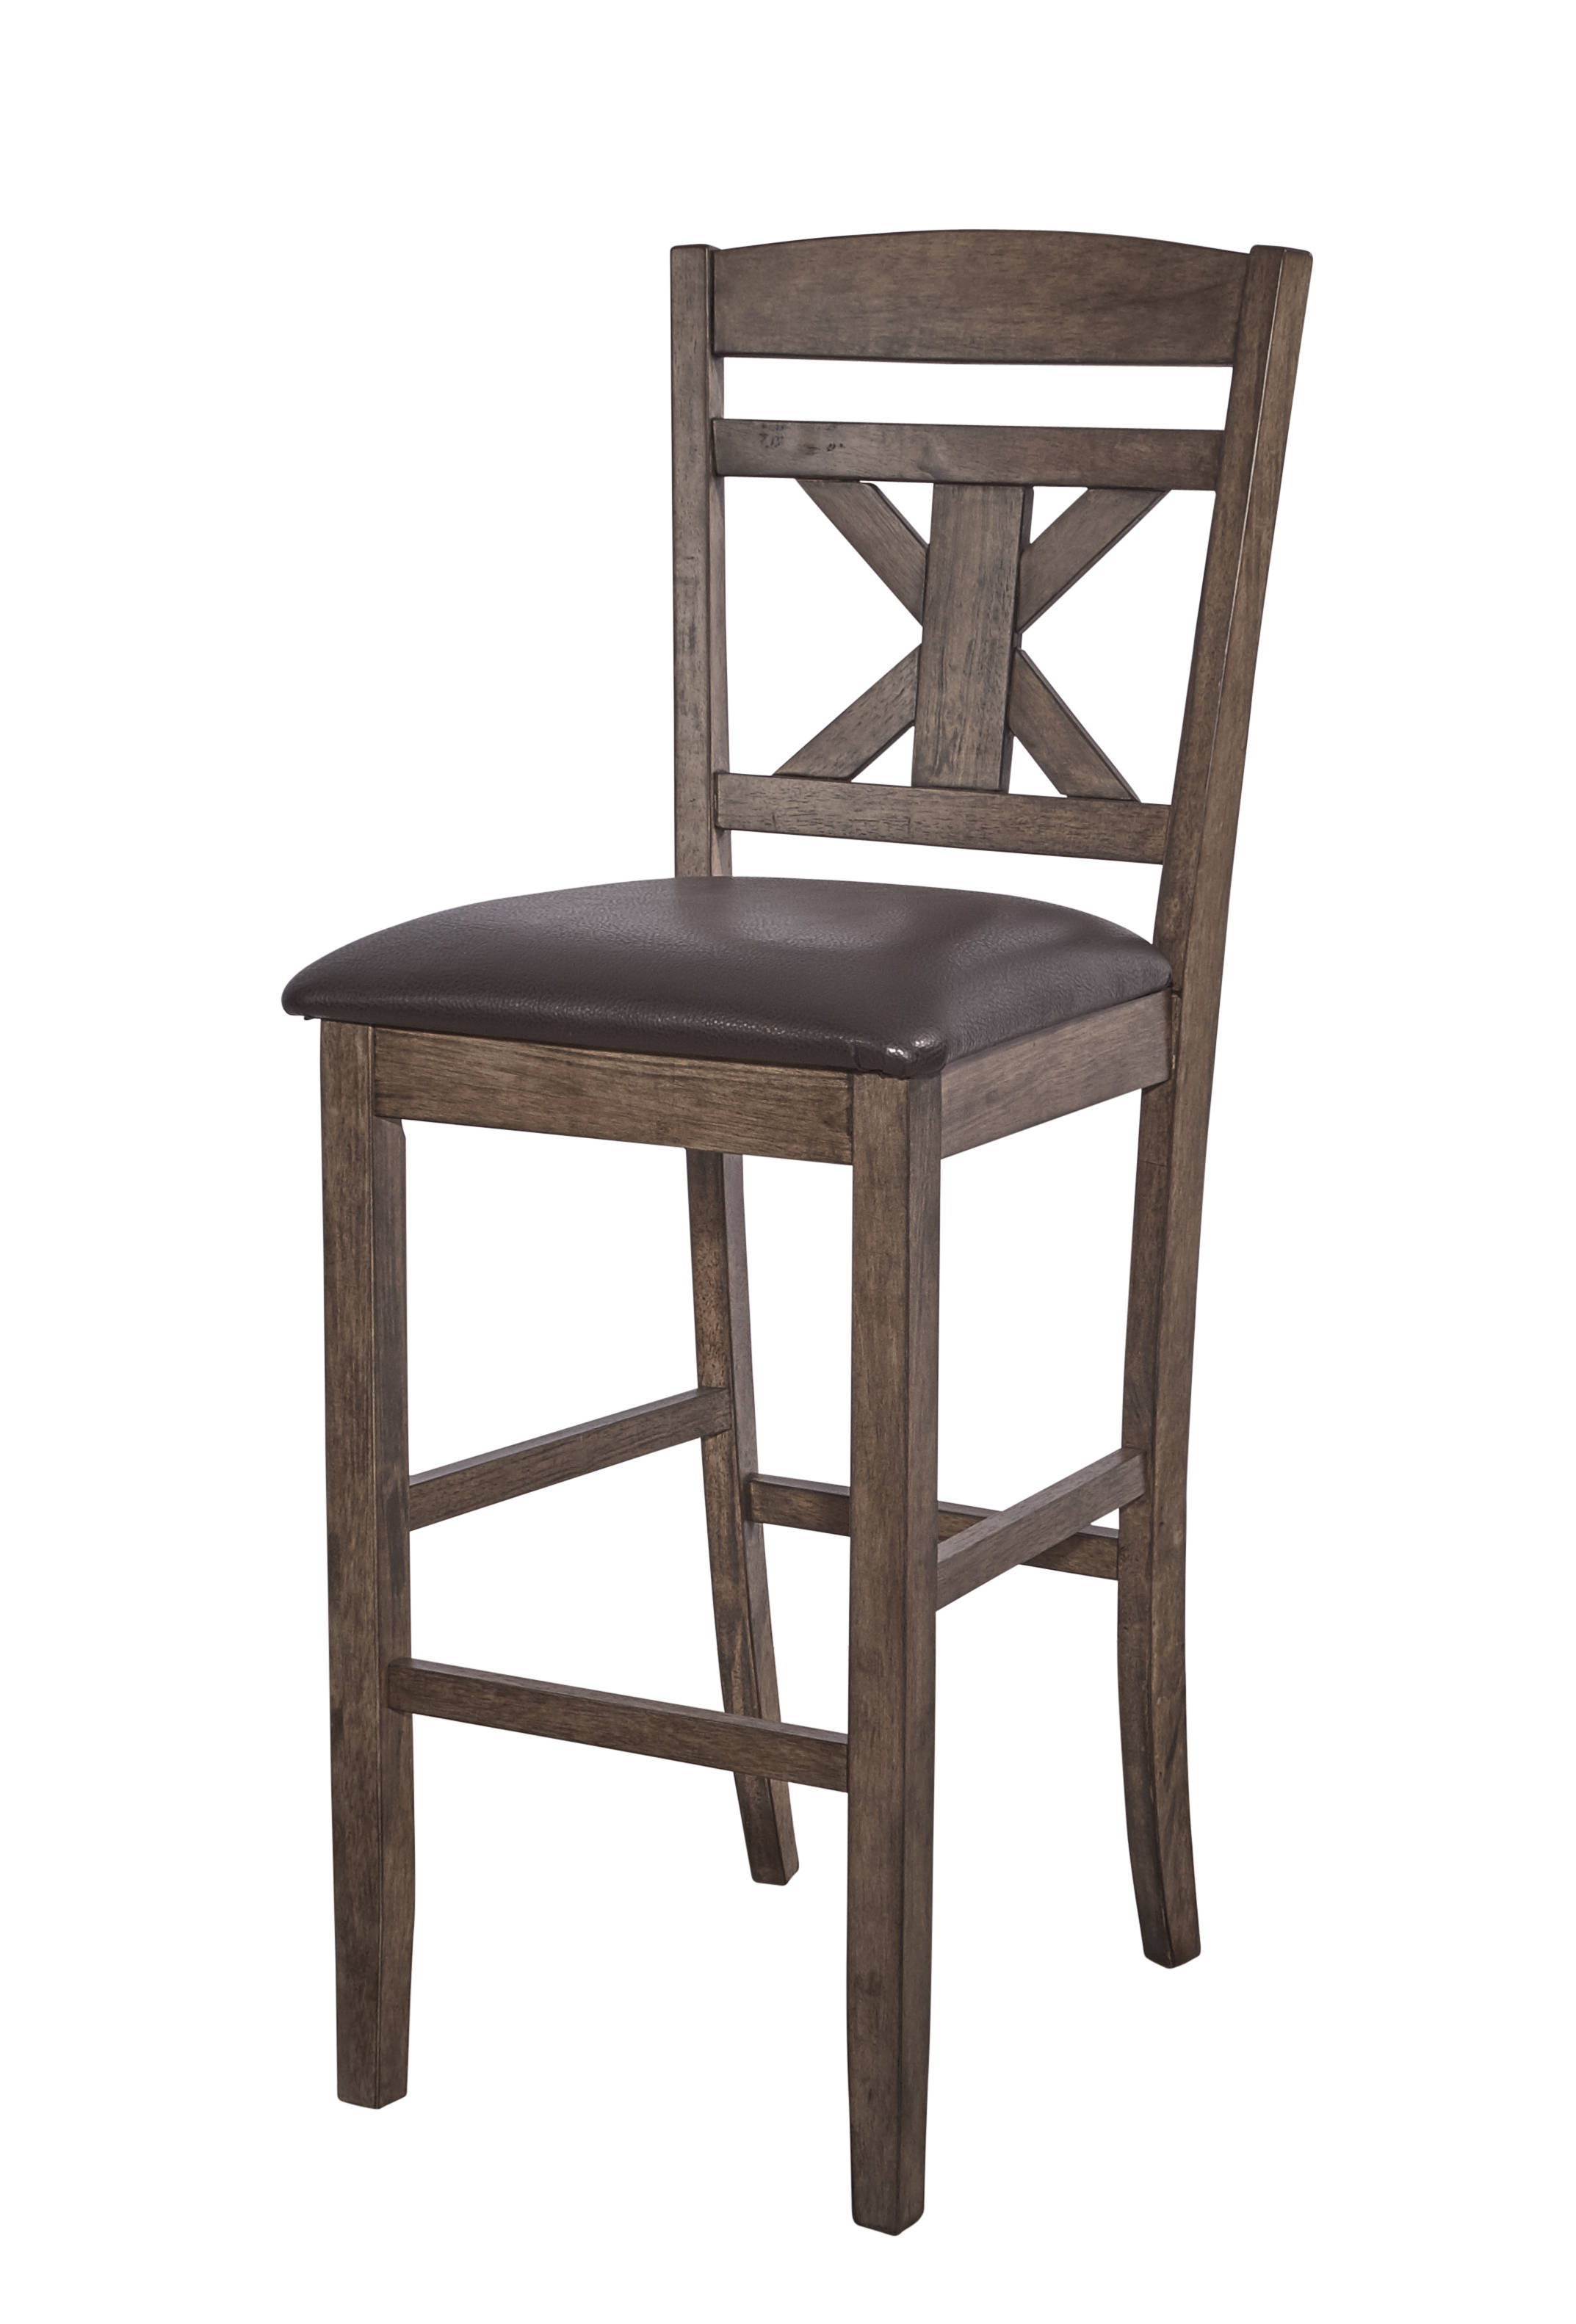 2 Powell Furniture Cohen Bar Stools The Classy Home